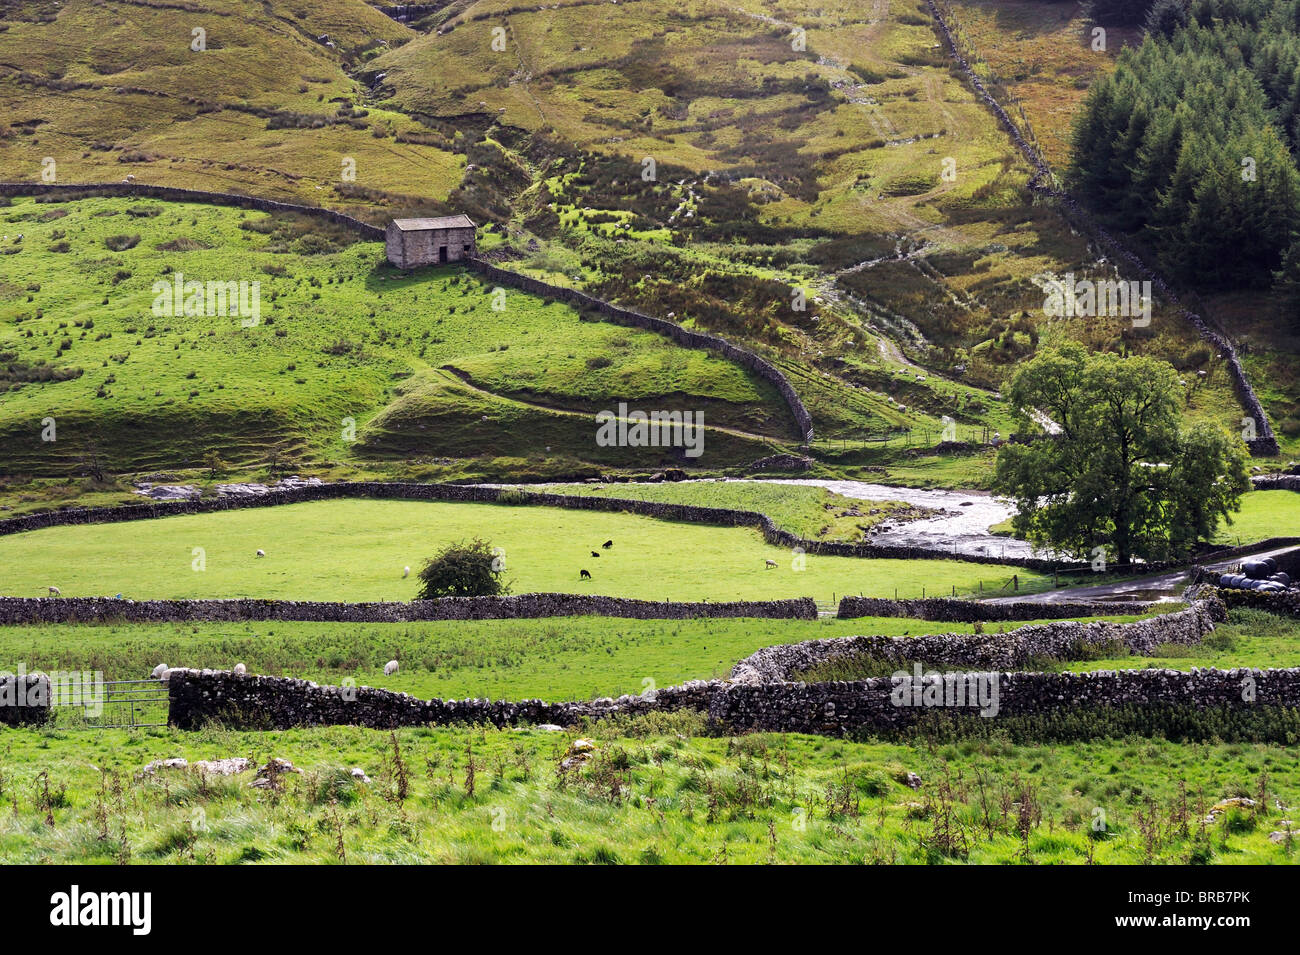 Yorkshire Dales barn and landscape at Beckermonds, Langstrothdale, England - Stock Image